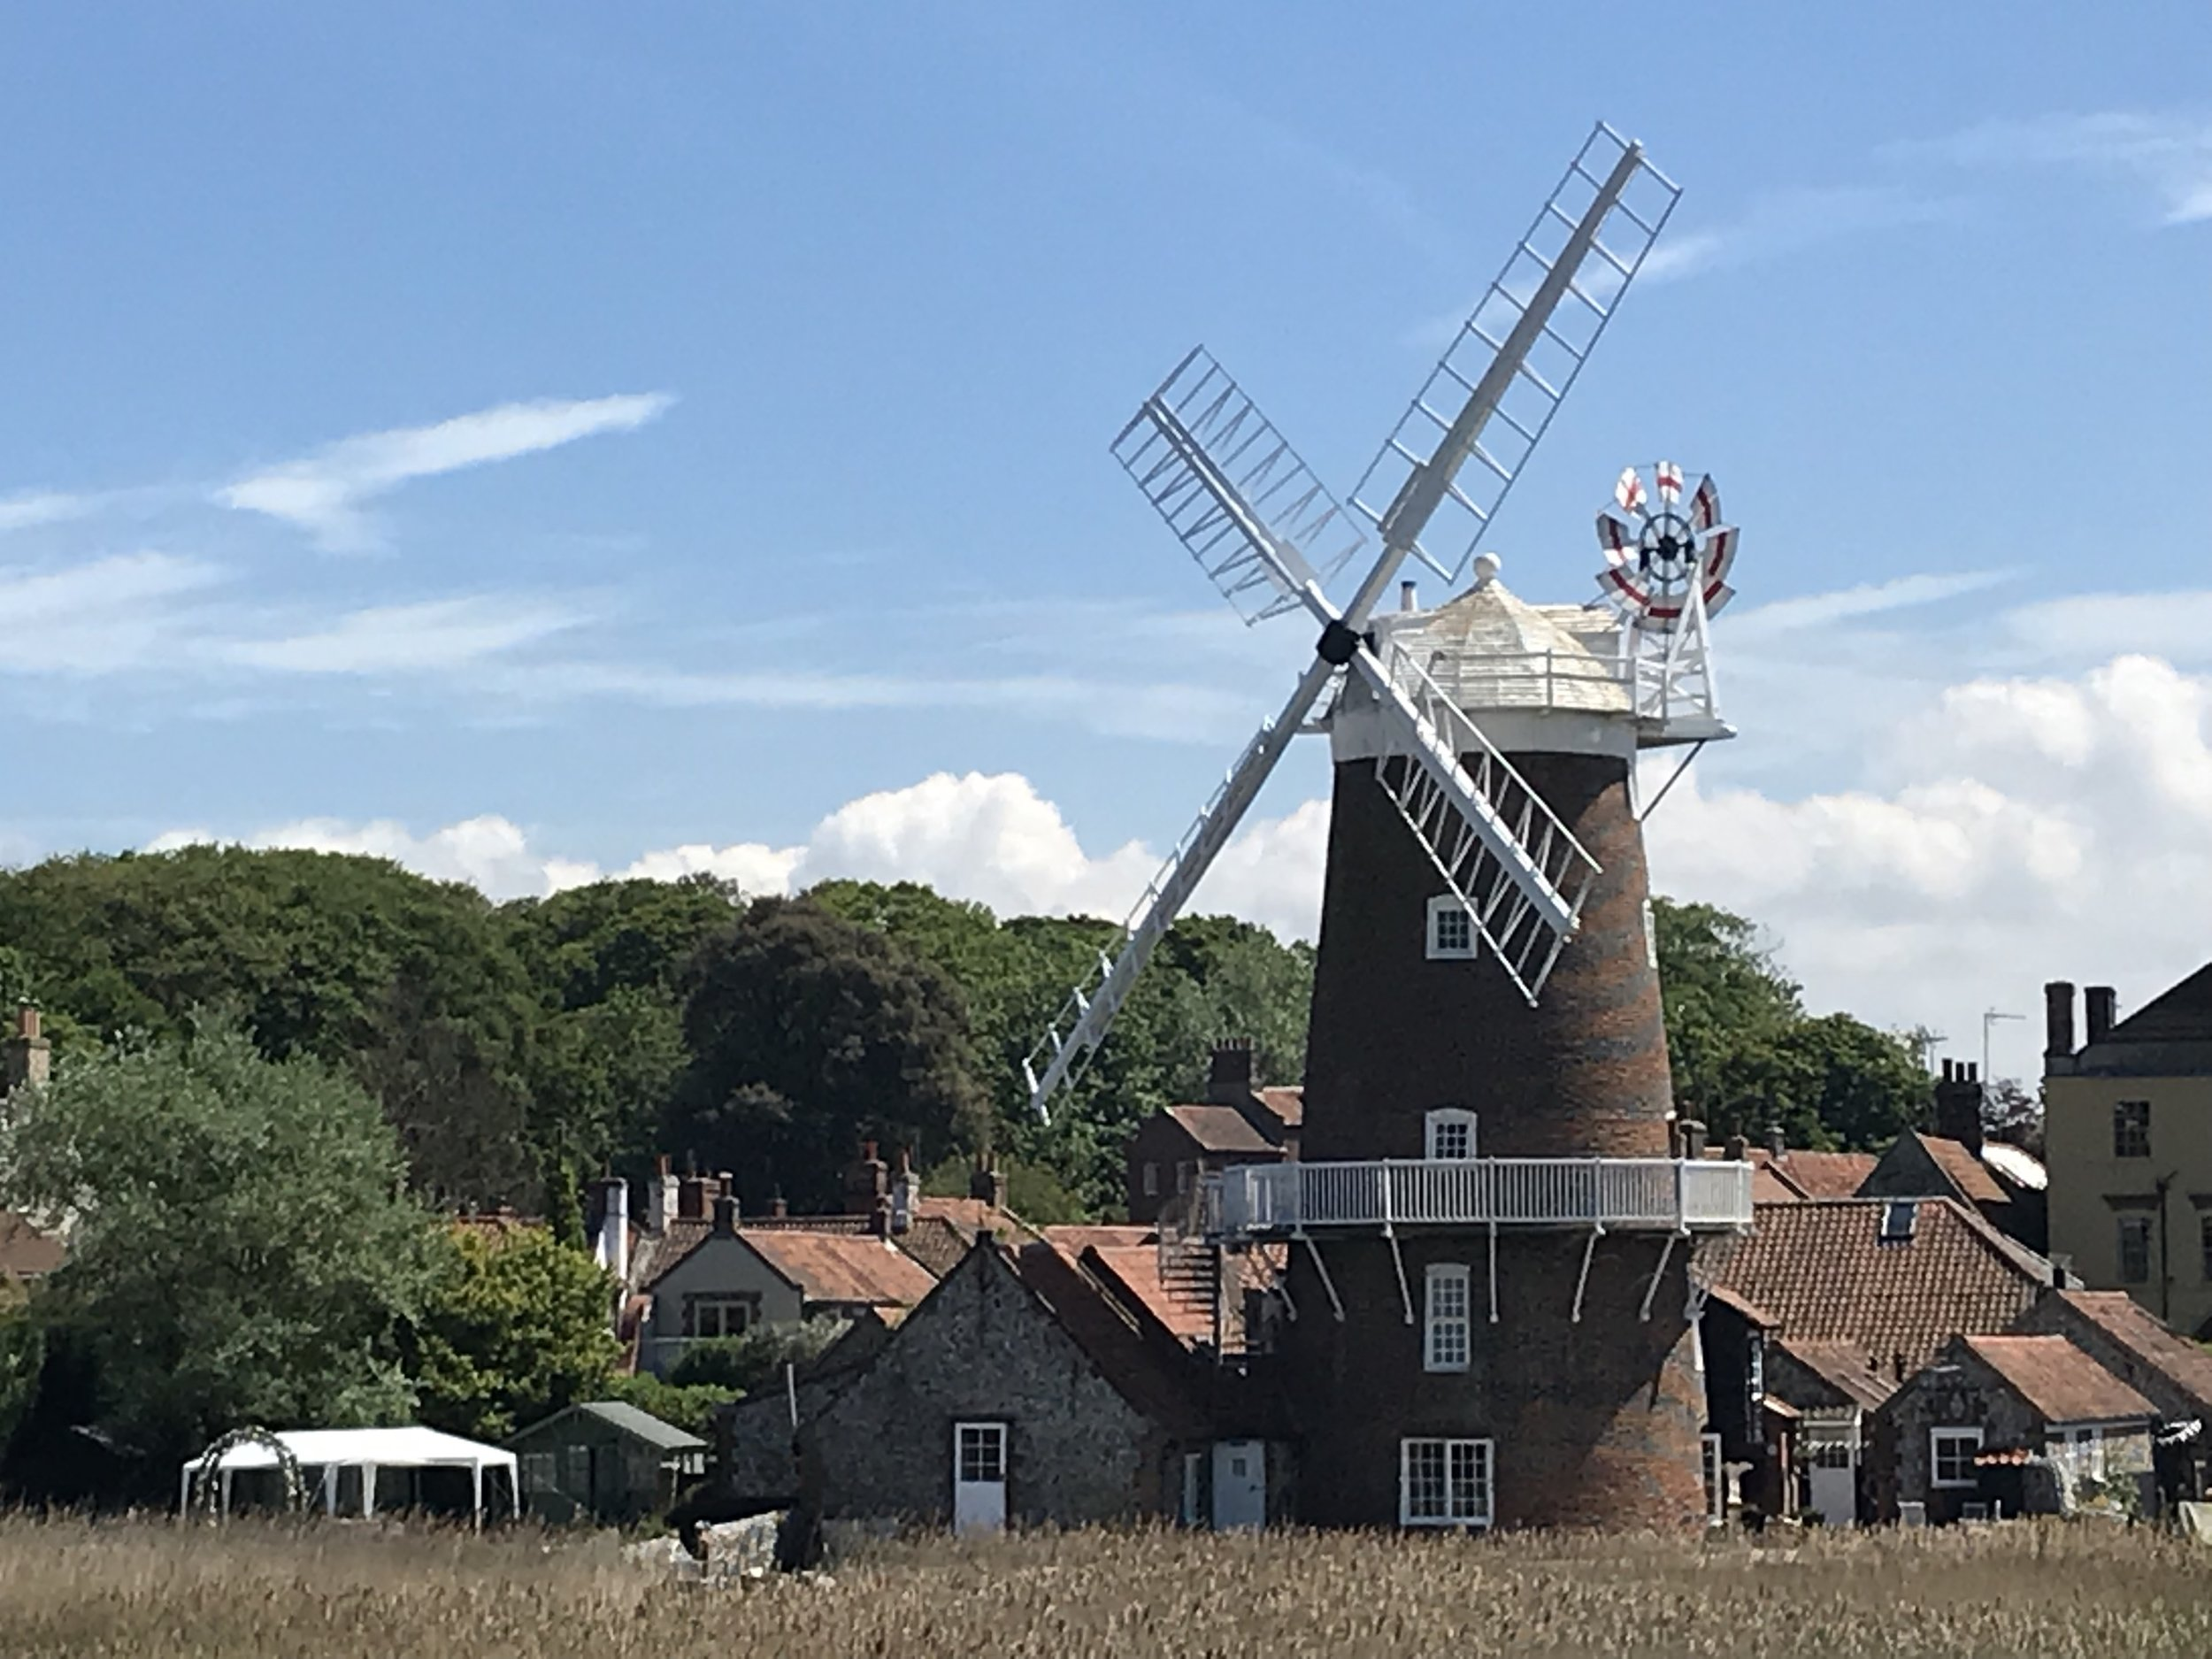 You can stay in the  hotel  at the windmill in Cley